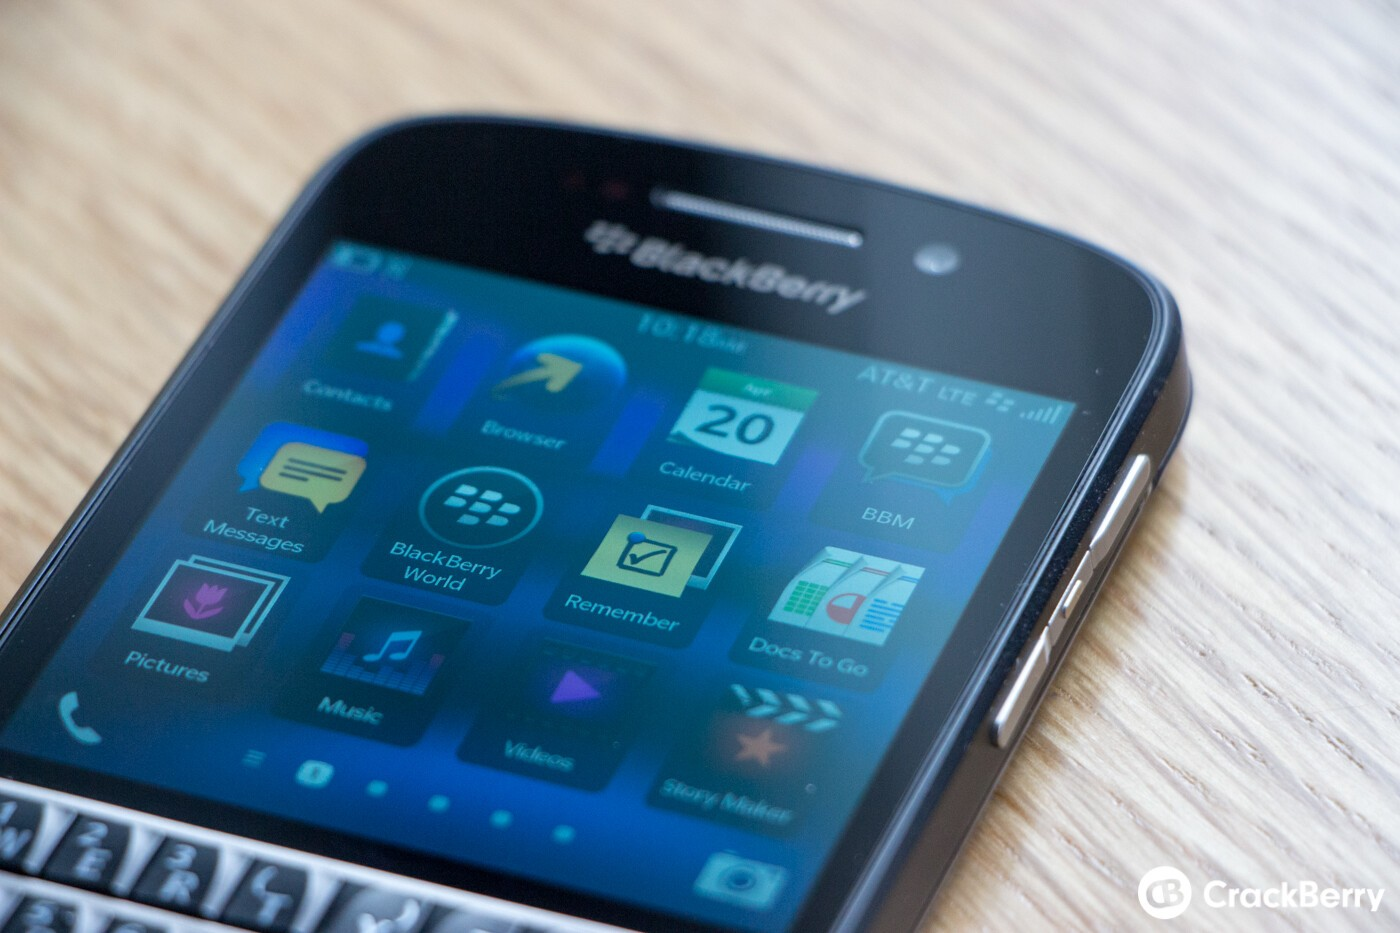 BlackBerry Q10 Display